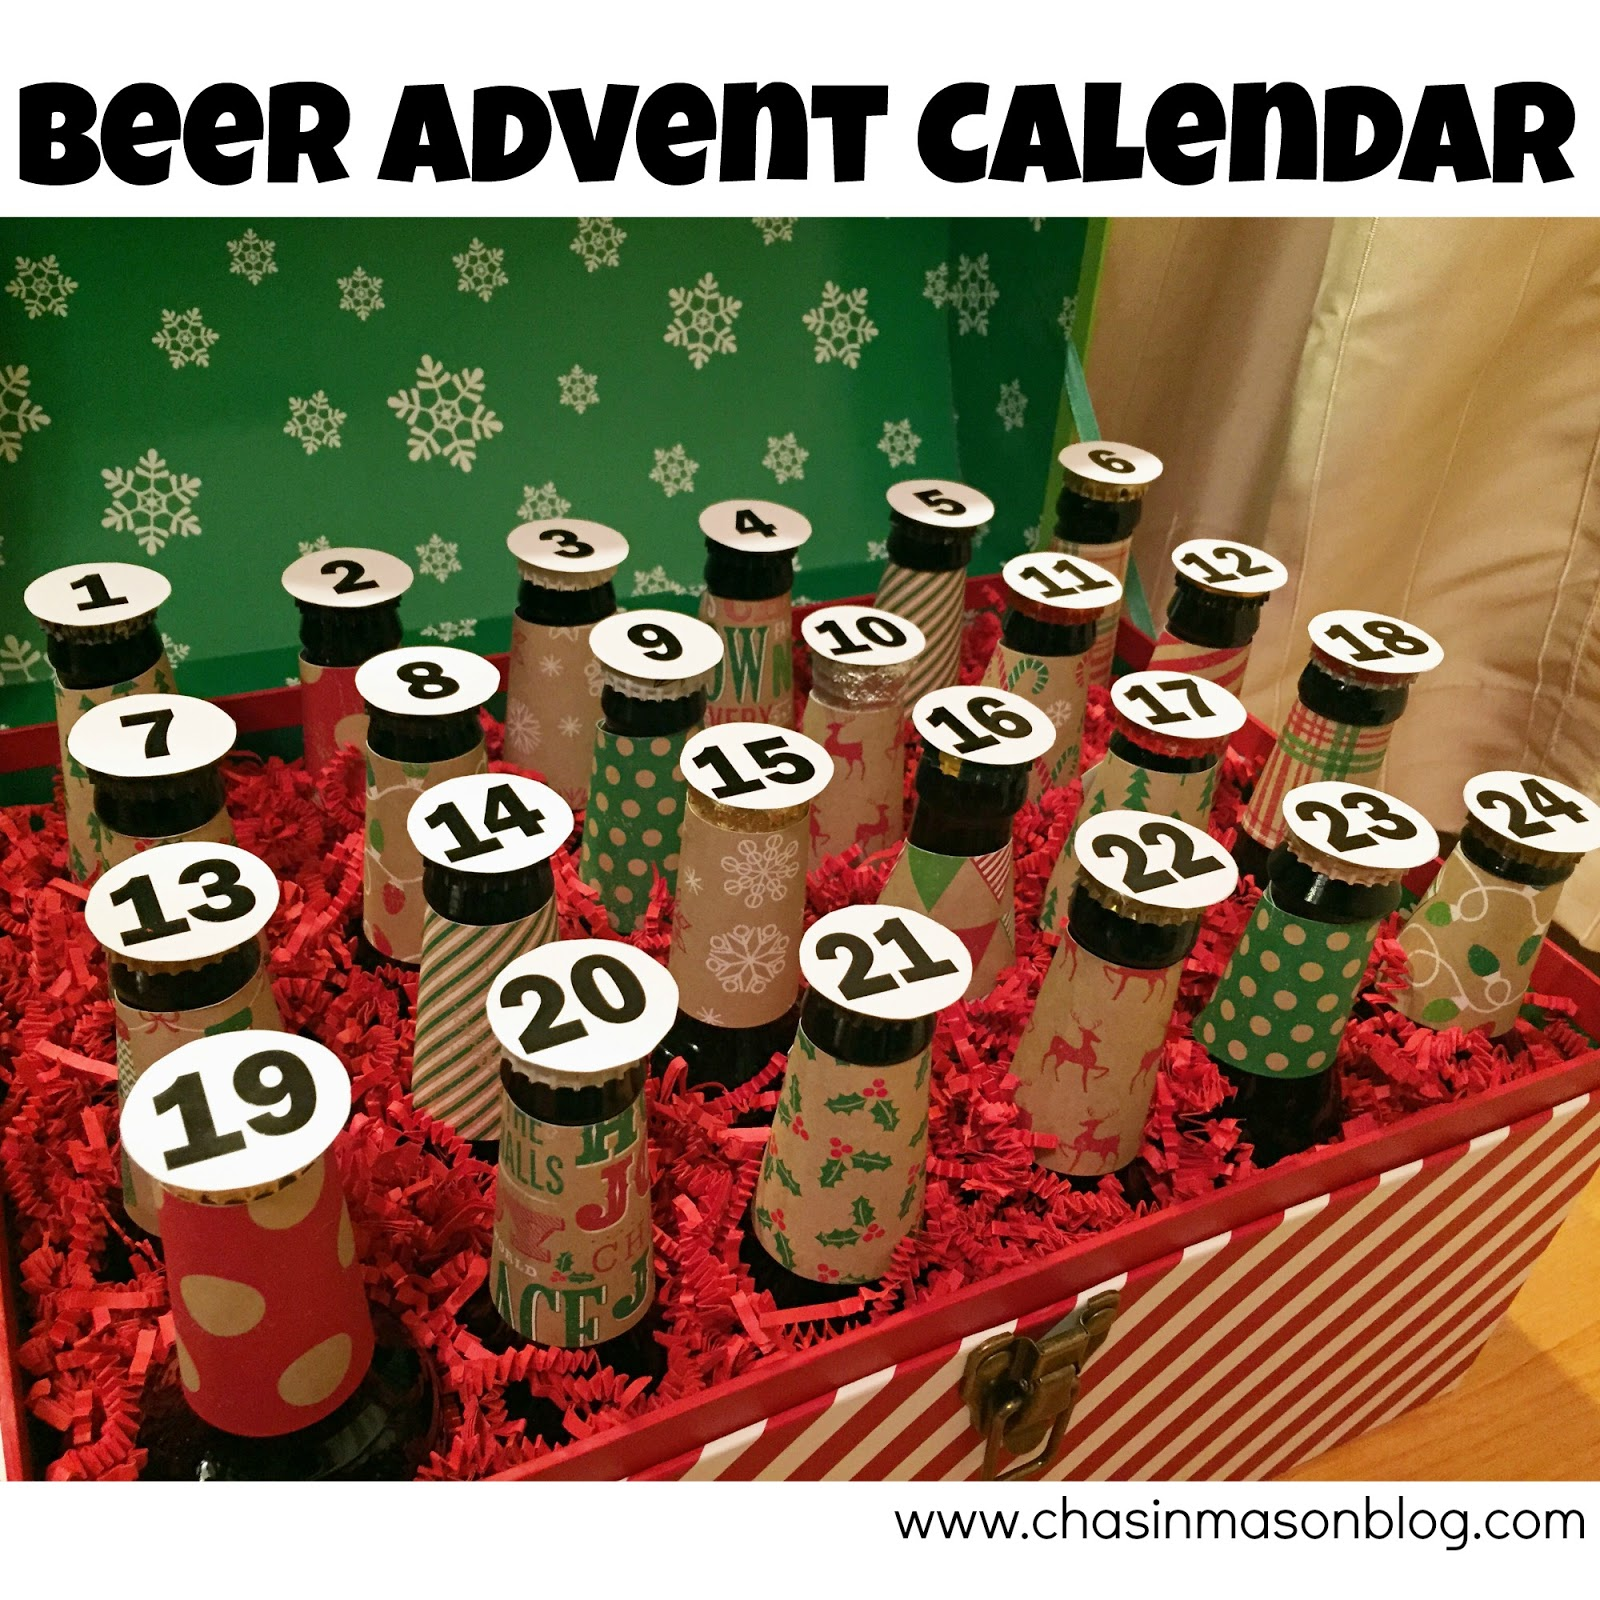 Christmas Ideas For Husband: Chasin' Mason: [Gifts For The Husband] DIY Beer Advent